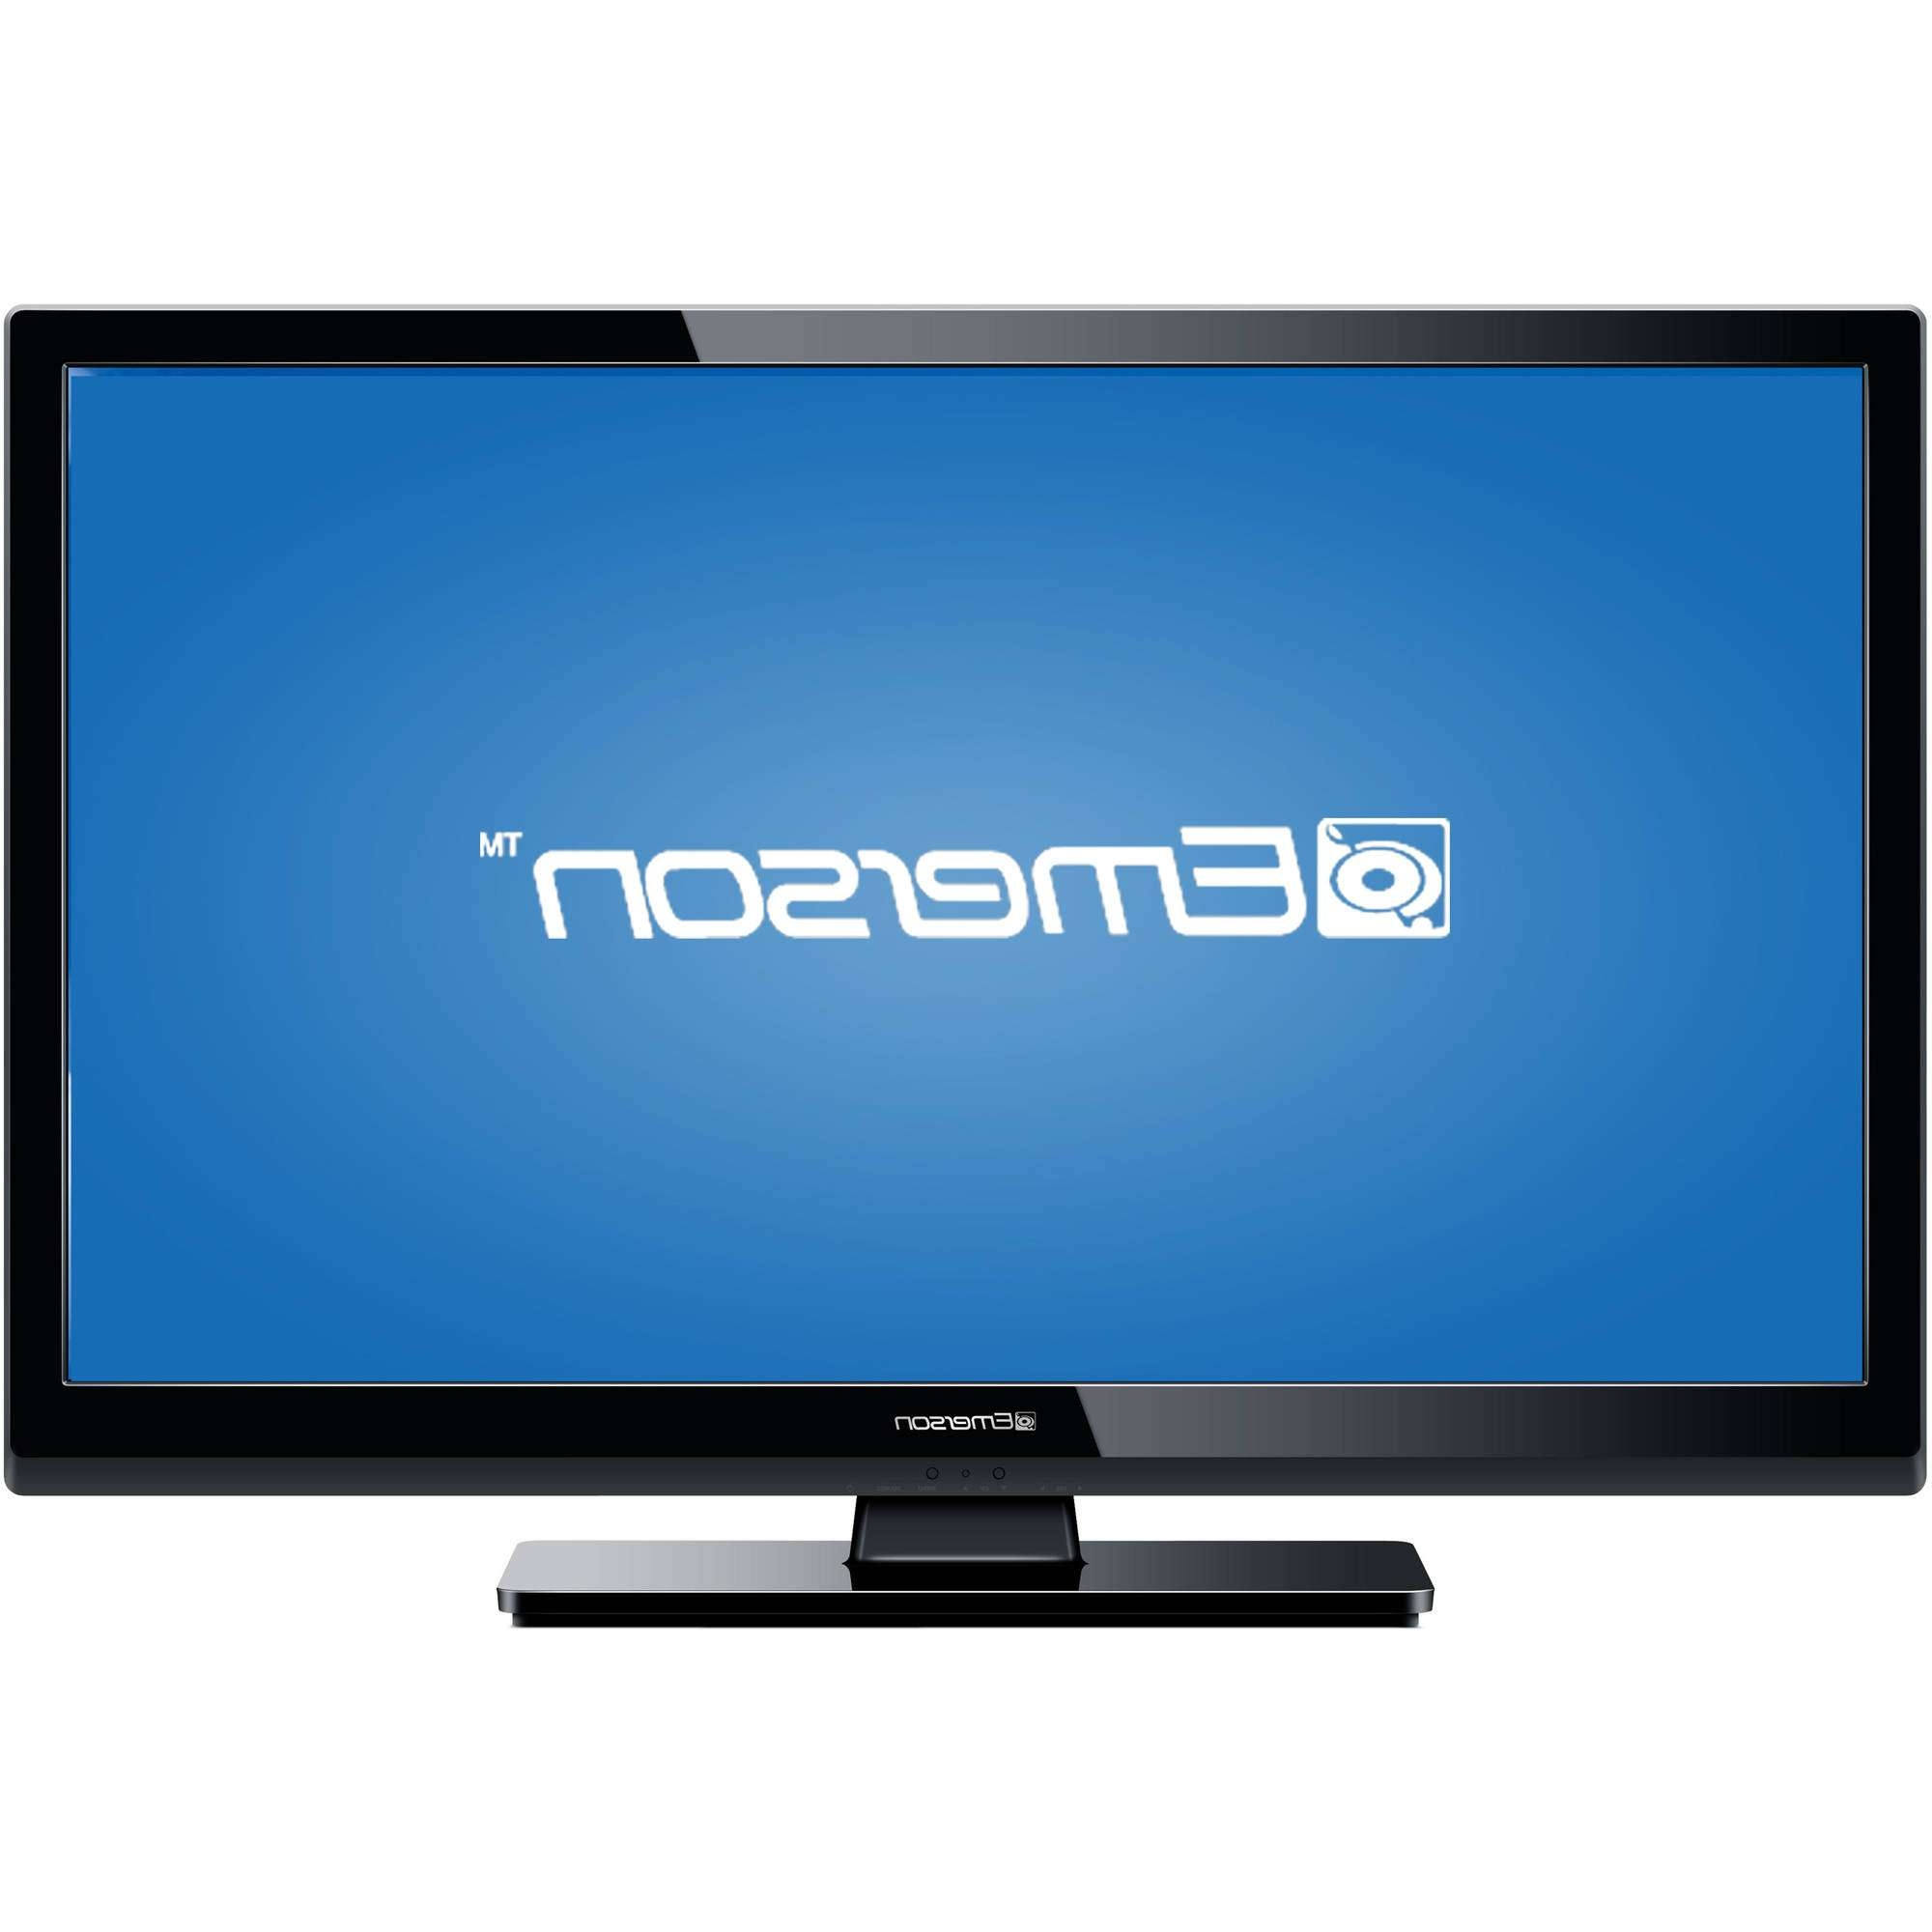 """Emerson Lf320em4 32"""" 720p 60hz Class Led Hdtv – Walmart Pertaining To Emerson Tv Stands (View 3 of 15)"""